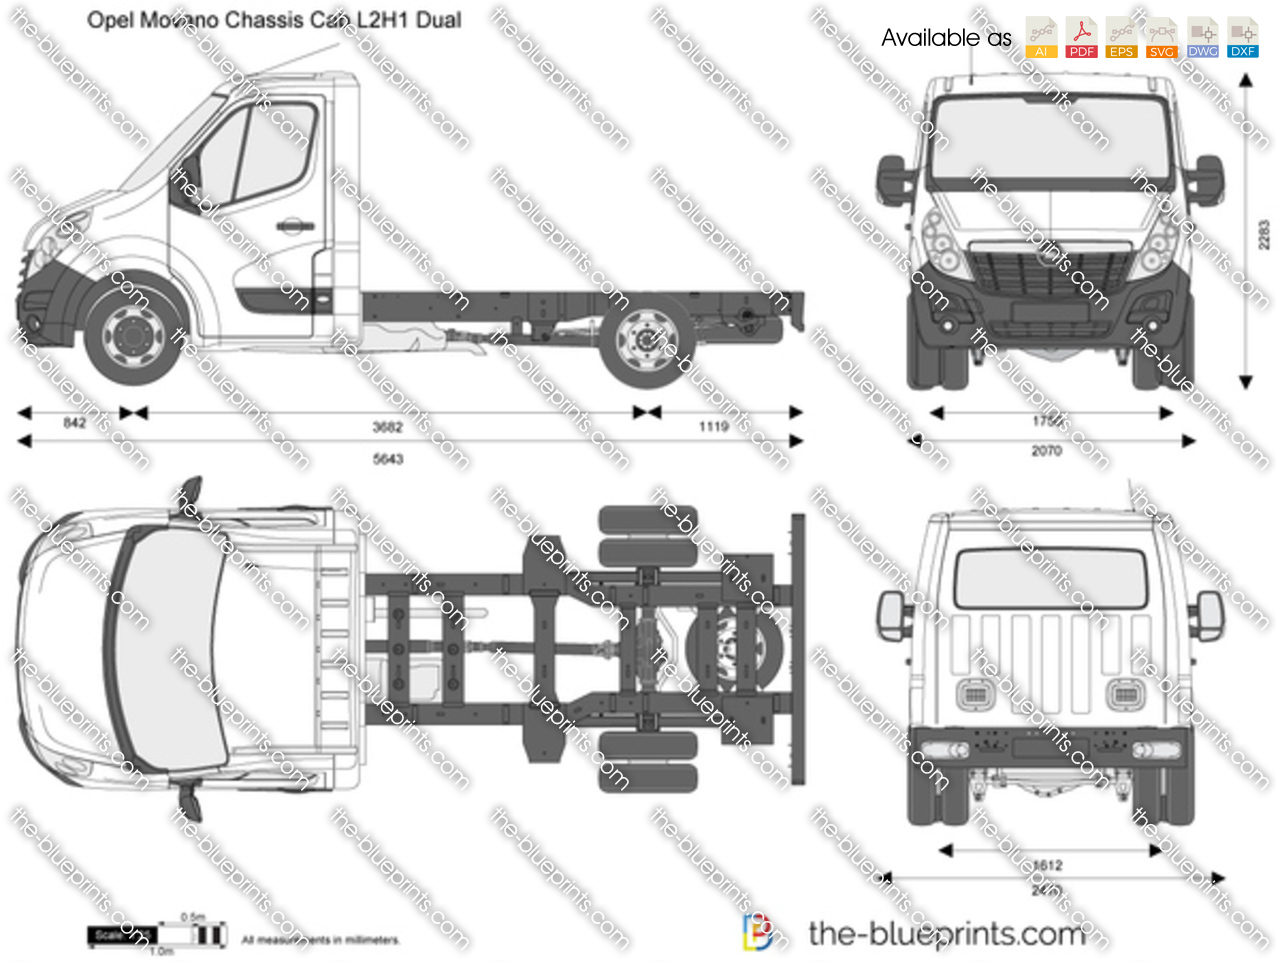 opel movano chassis cab l2h1 dual vector drawing. Black Bedroom Furniture Sets. Home Design Ideas